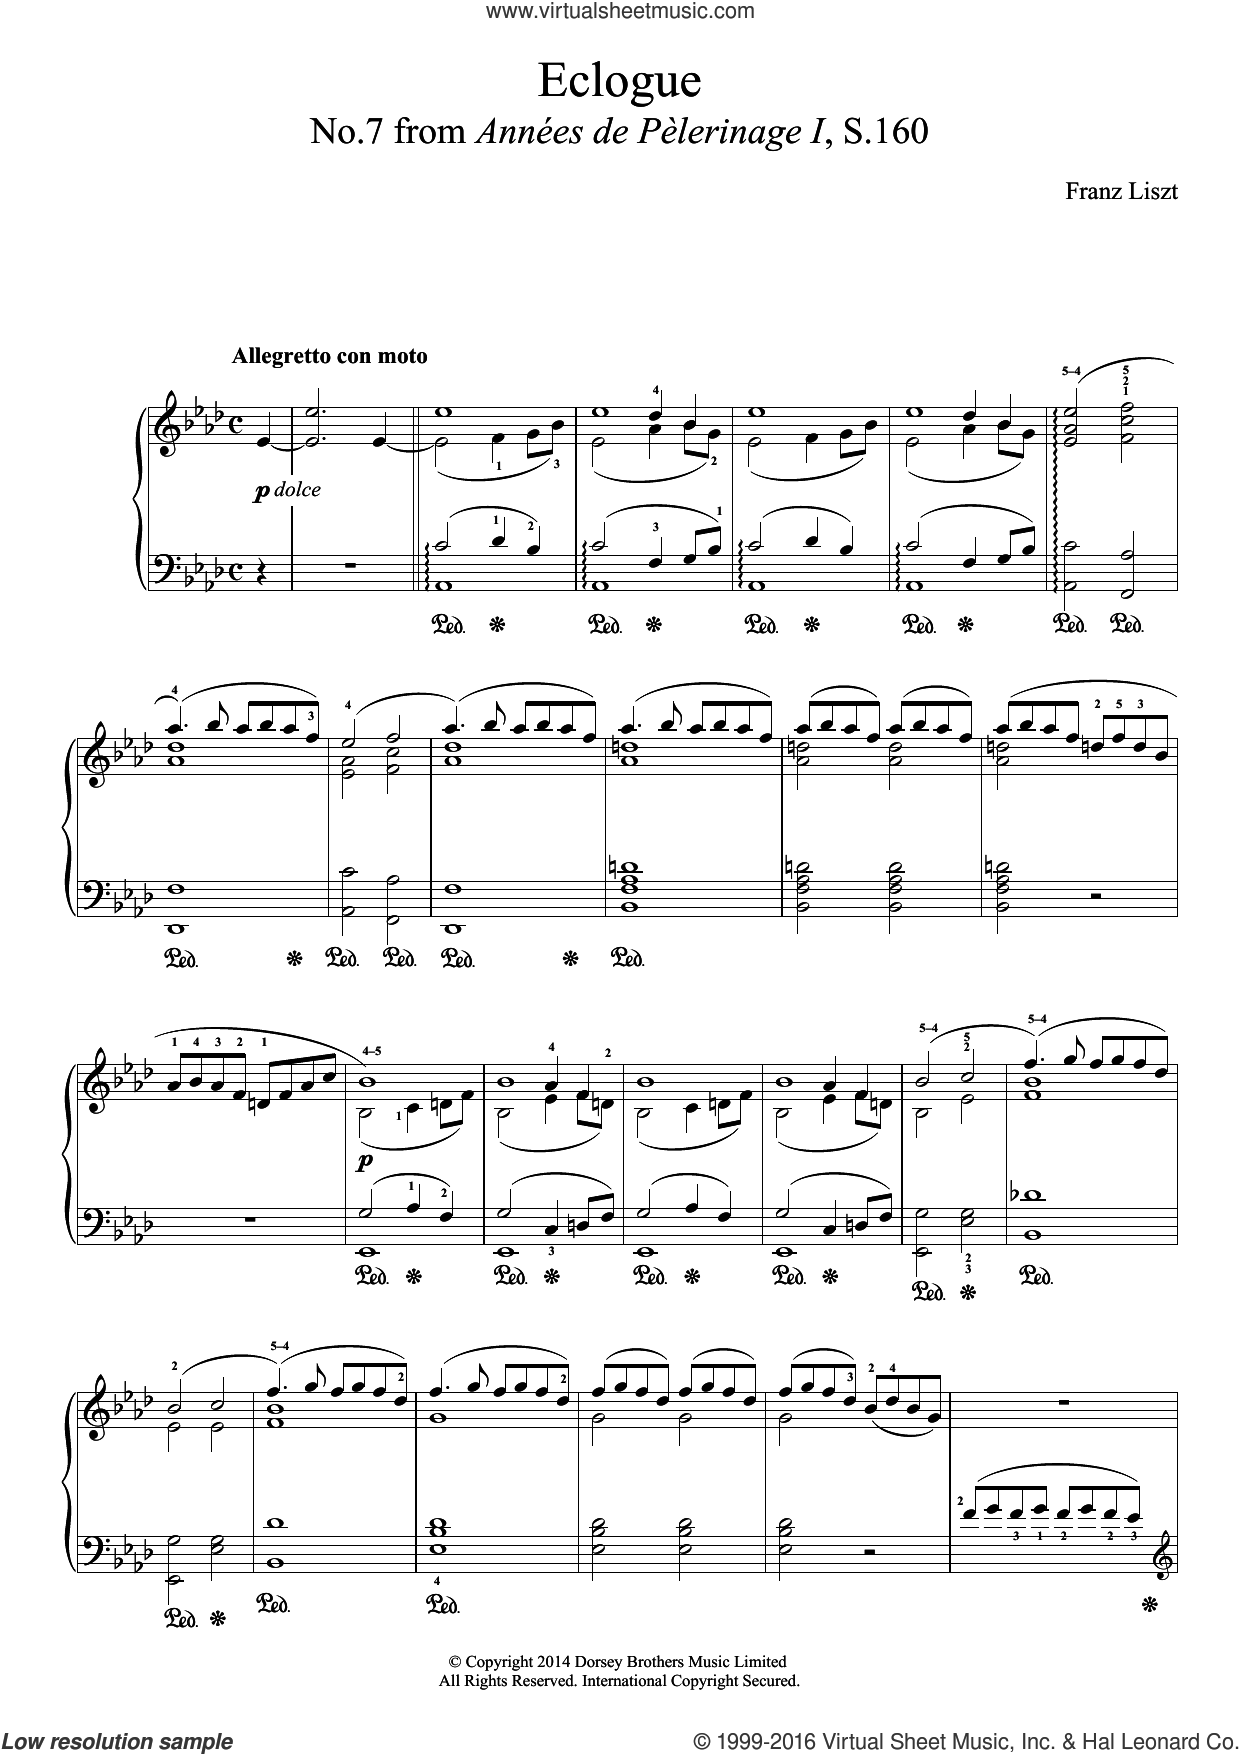 Annees De Pelerinage, No.7: Eclogue sheet music for piano solo by Franz Liszt. Score Image Preview.